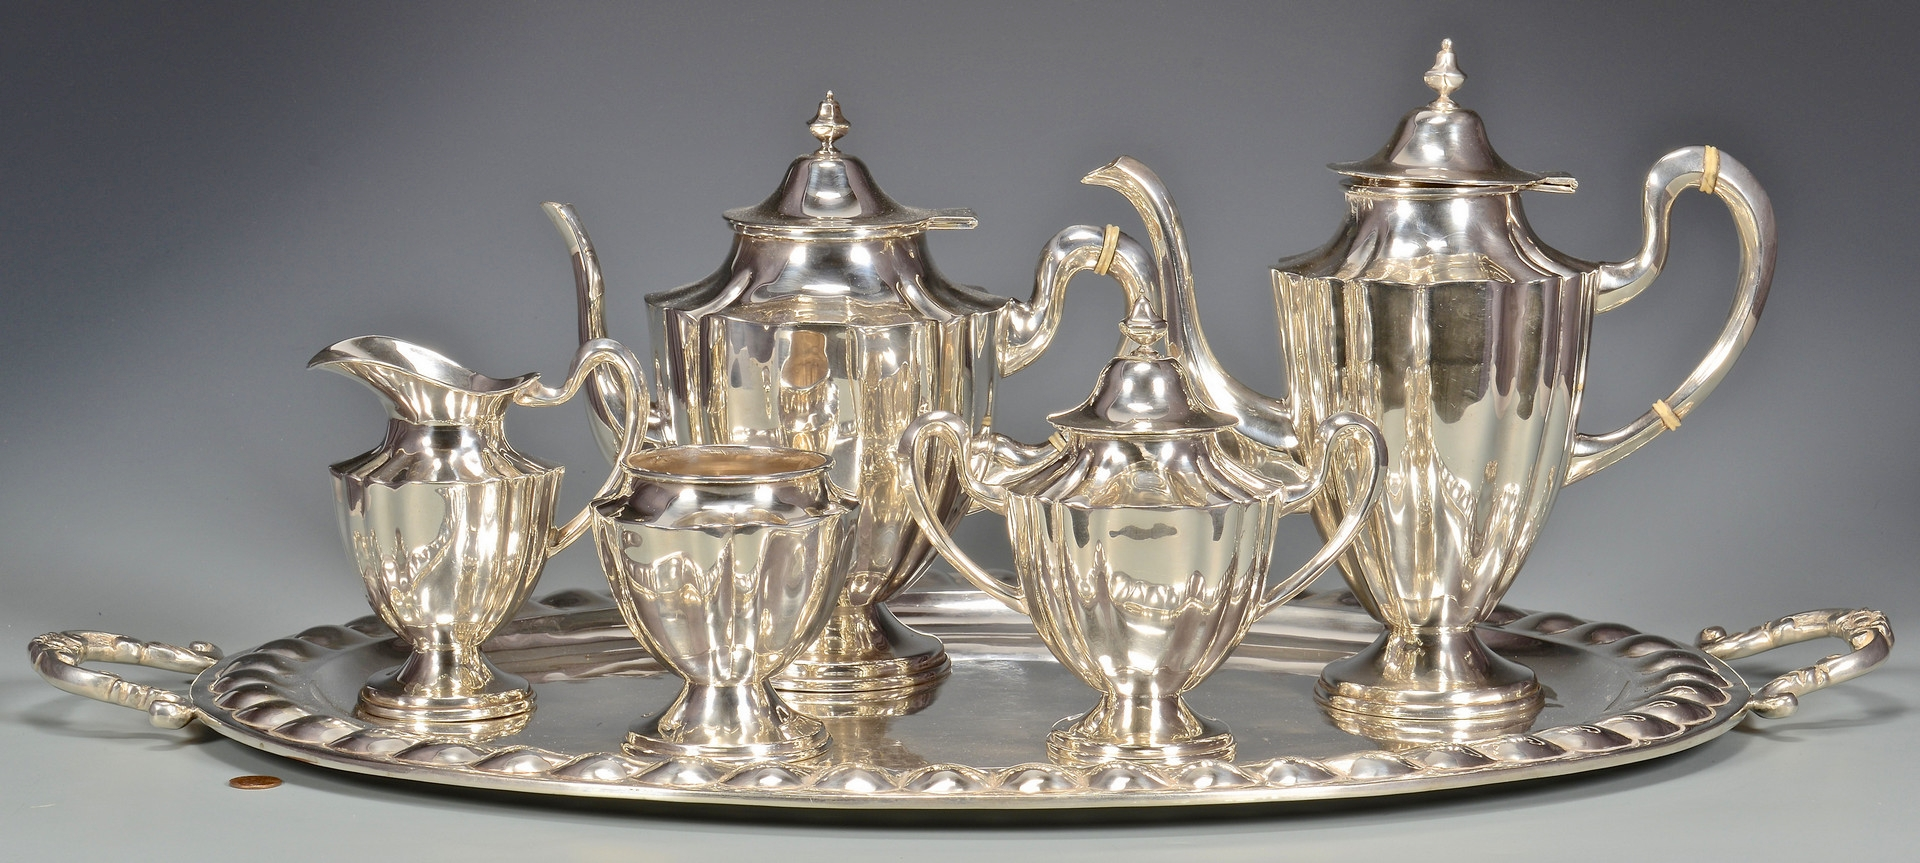 Lot 39: 6 pc. Mexican Sterling Tea Set w/ Sterling Tray